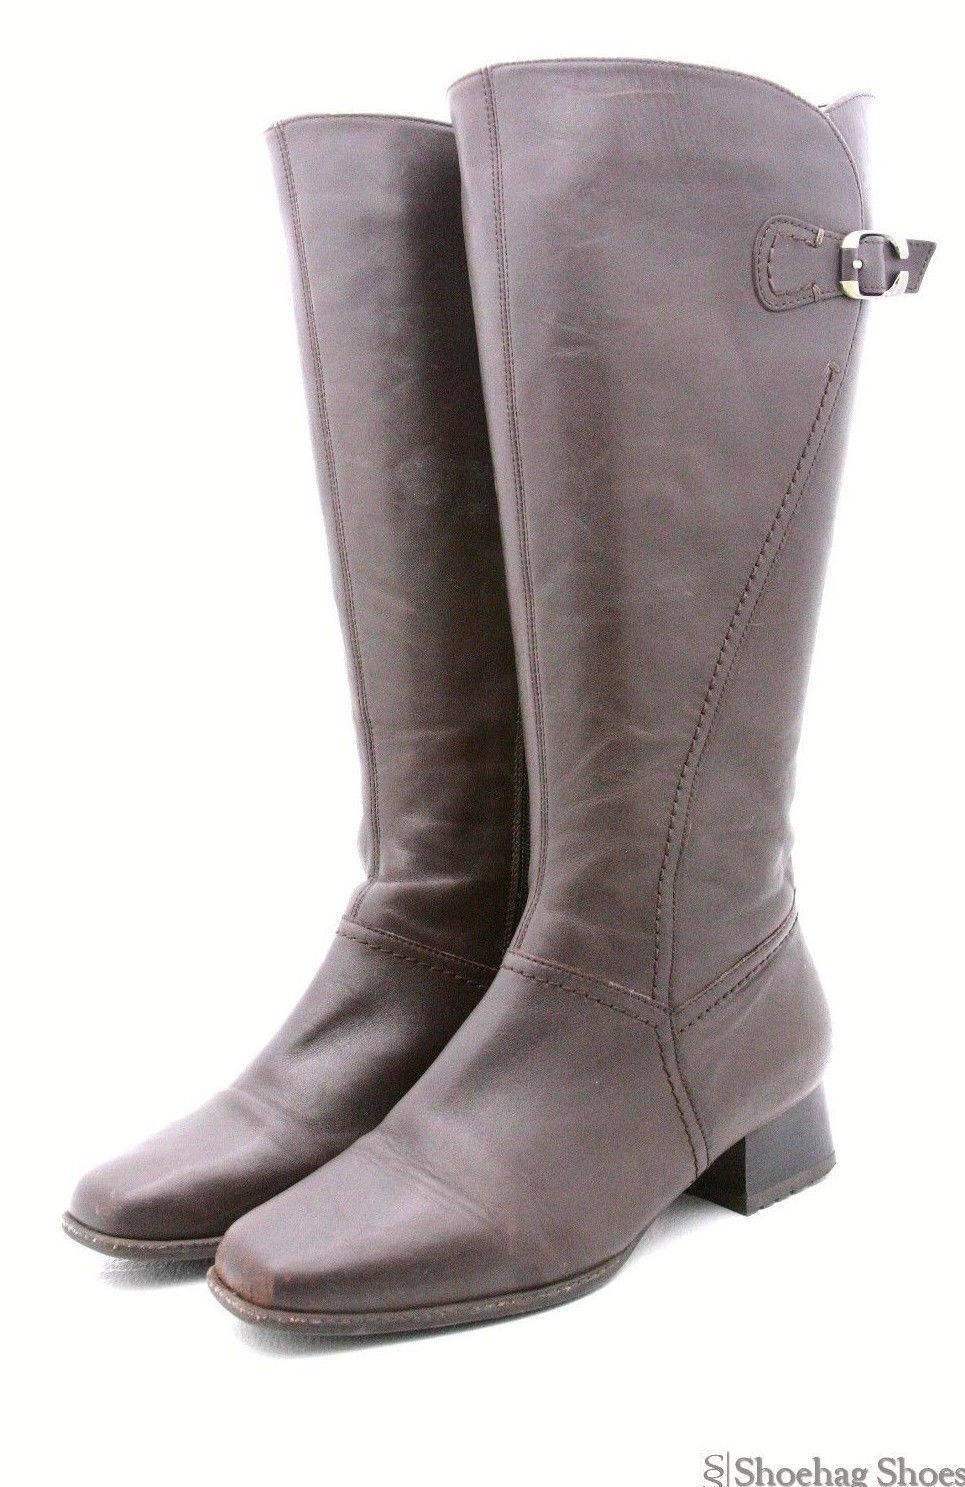 These are a pair of Ara German Luftpolster Womens Boots 8 M genuine Brown  Leather Zip knee High Tall 72afdd8df1c0